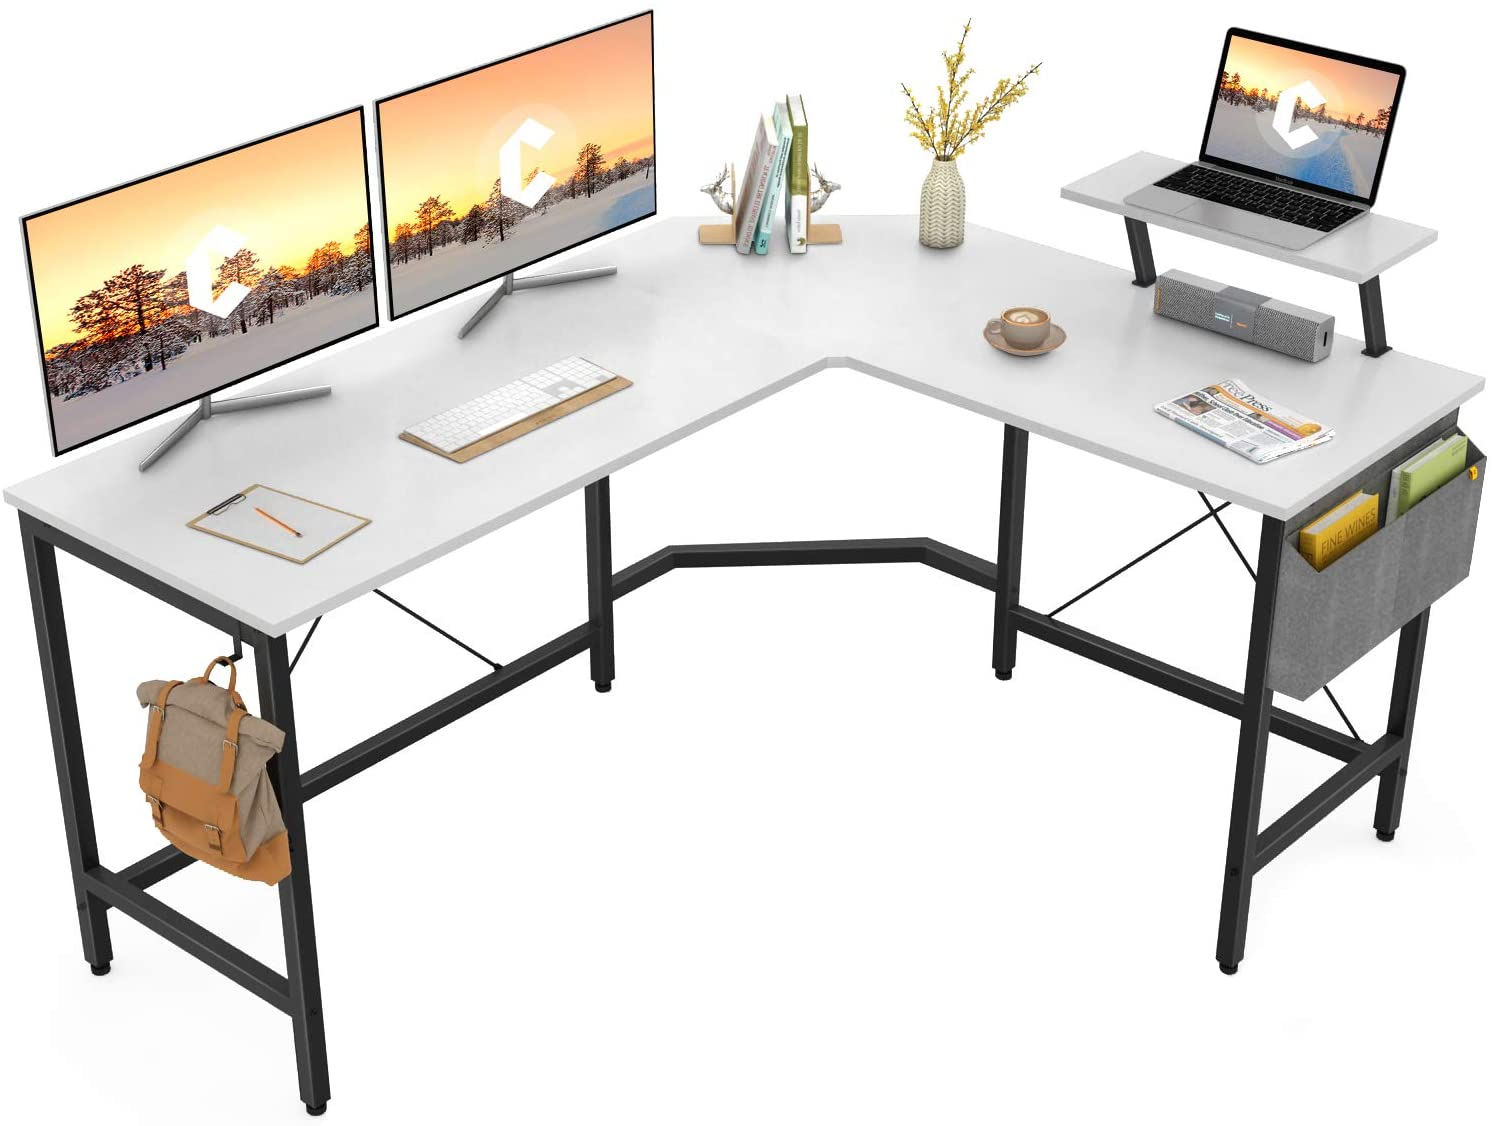 L-Shaped Corner Desk Computer Gaming Desk PC Table Writting Table Home Office